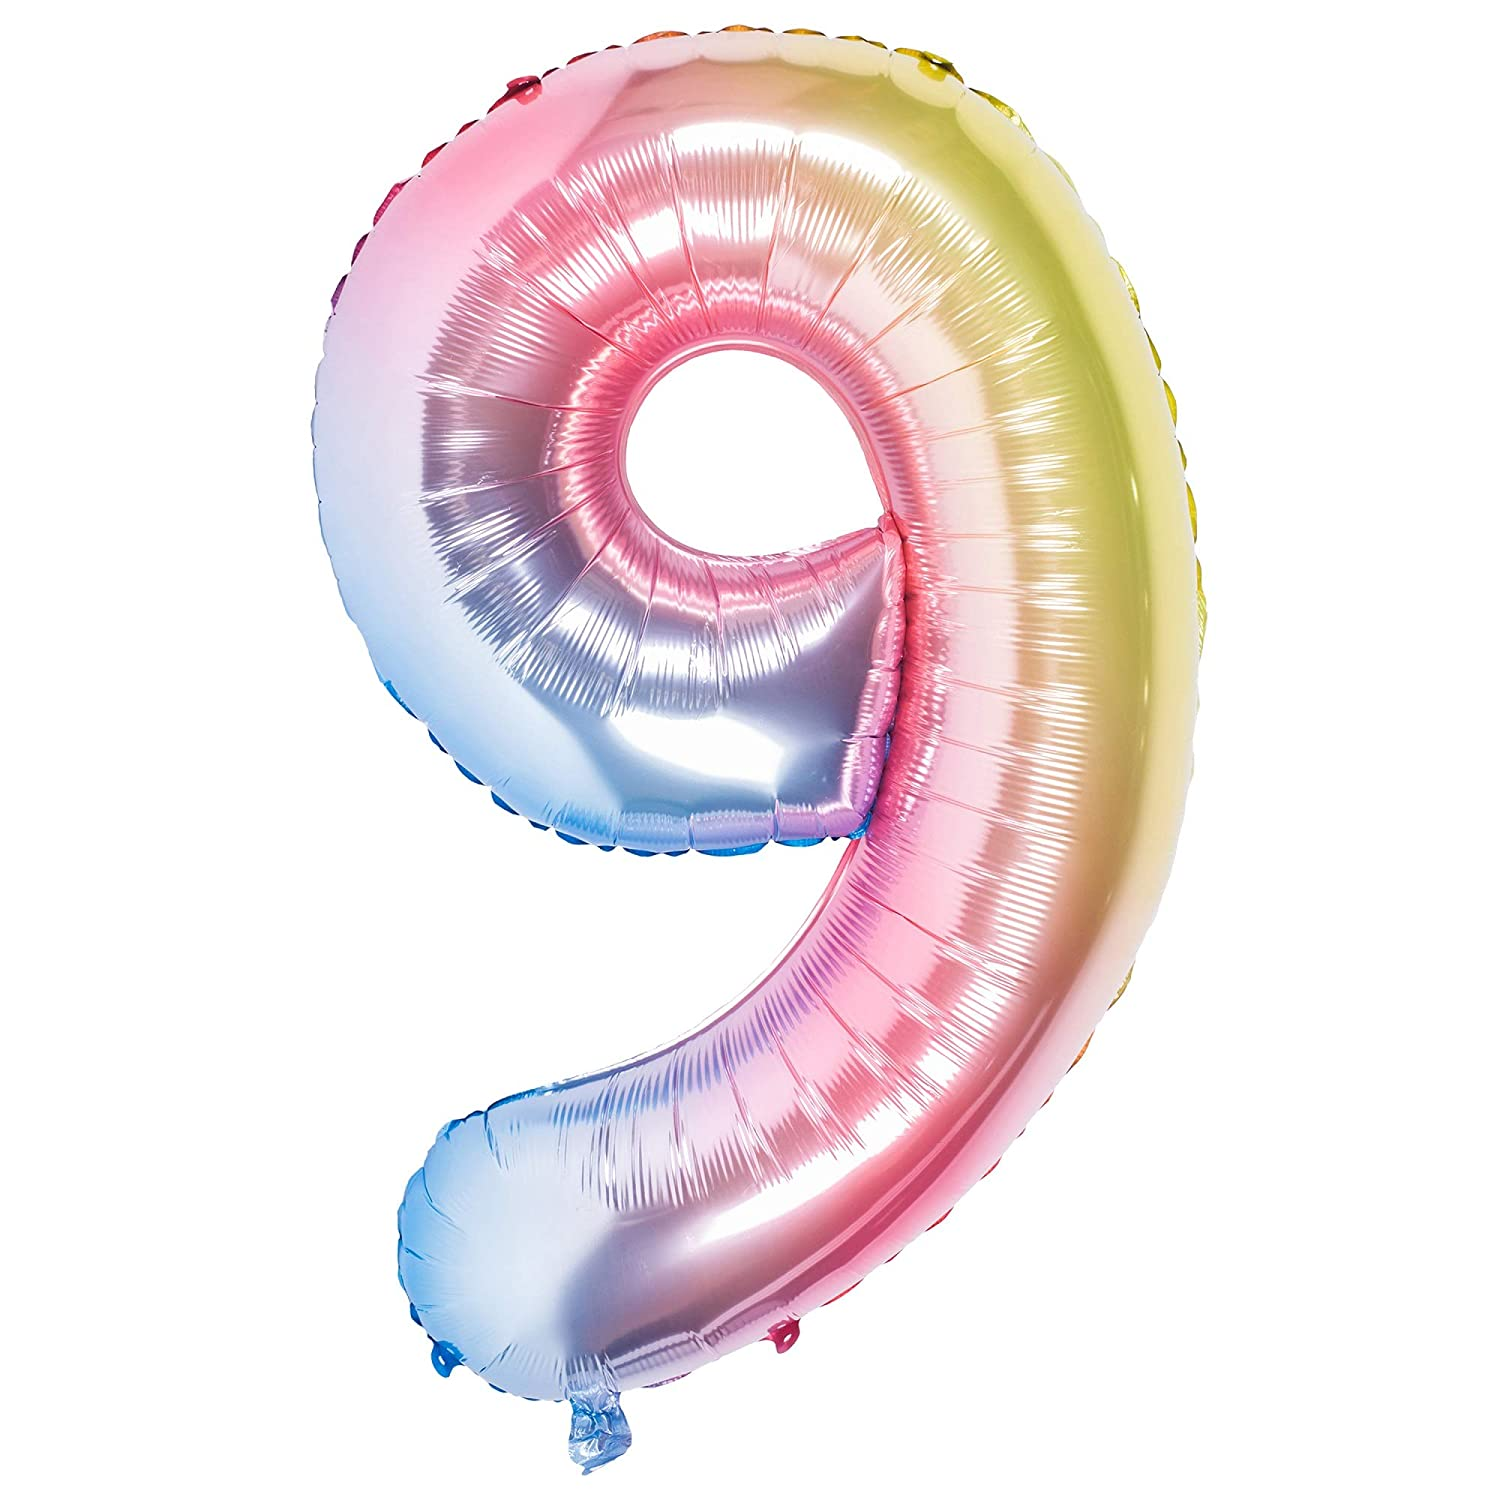 Number Balloons,42 Inch Birthday Number Balloon Party Decorations Supplies Helium Foil Mylar Digital Balloons